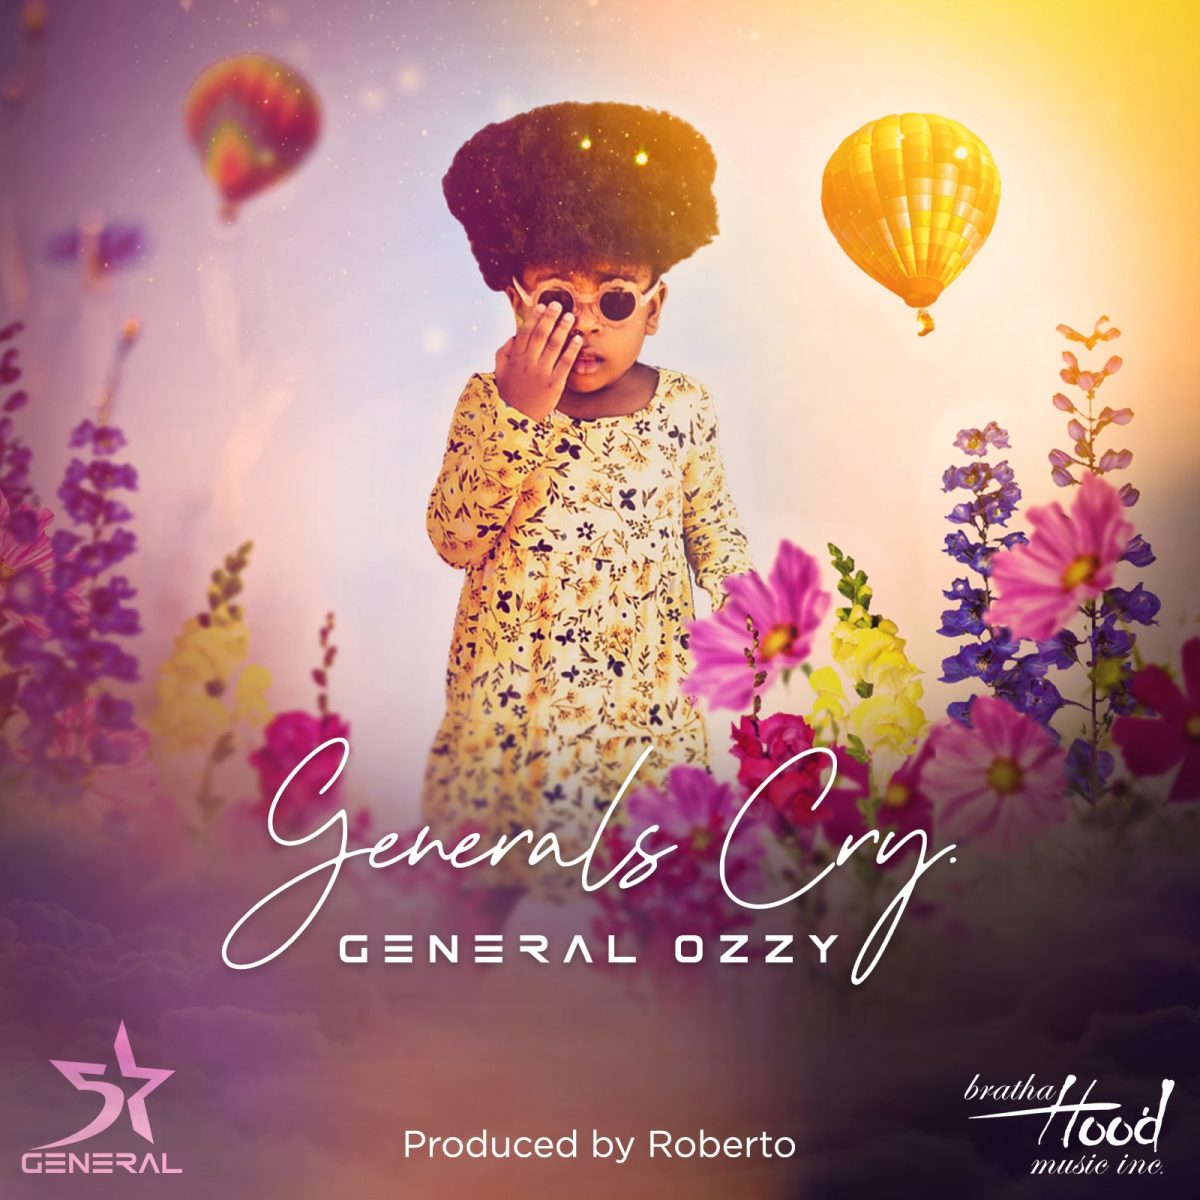 General Ozzy - General's Cry